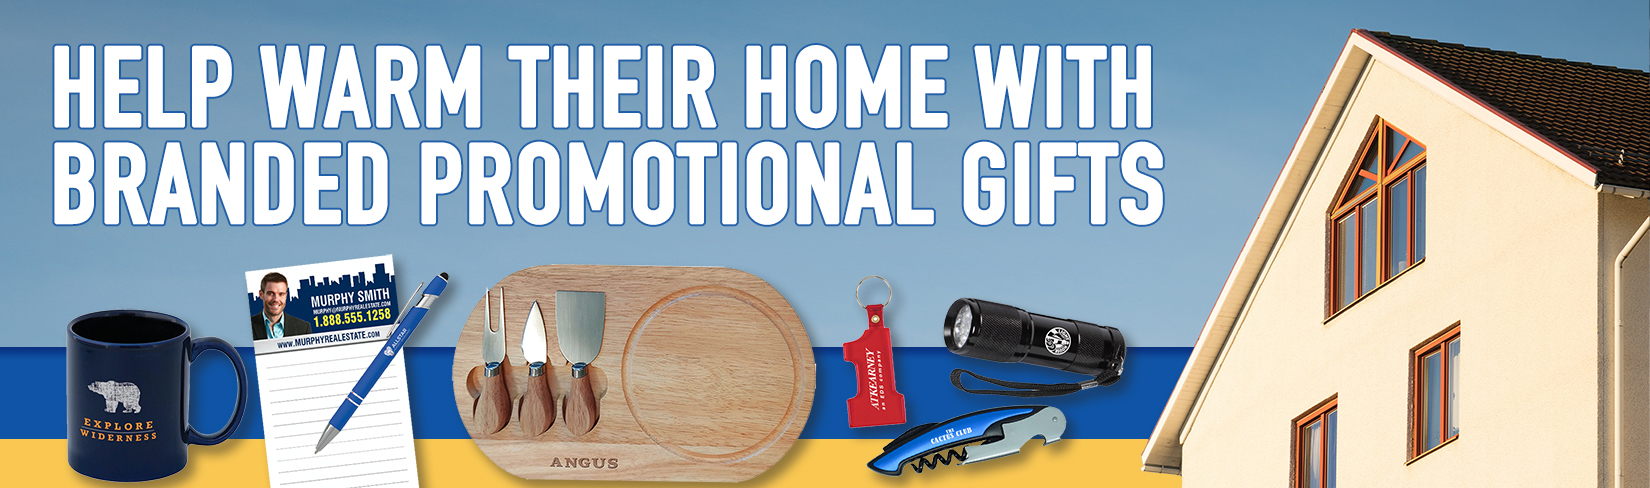 Help Them Warm their Home with Branded Promotional Gifts!